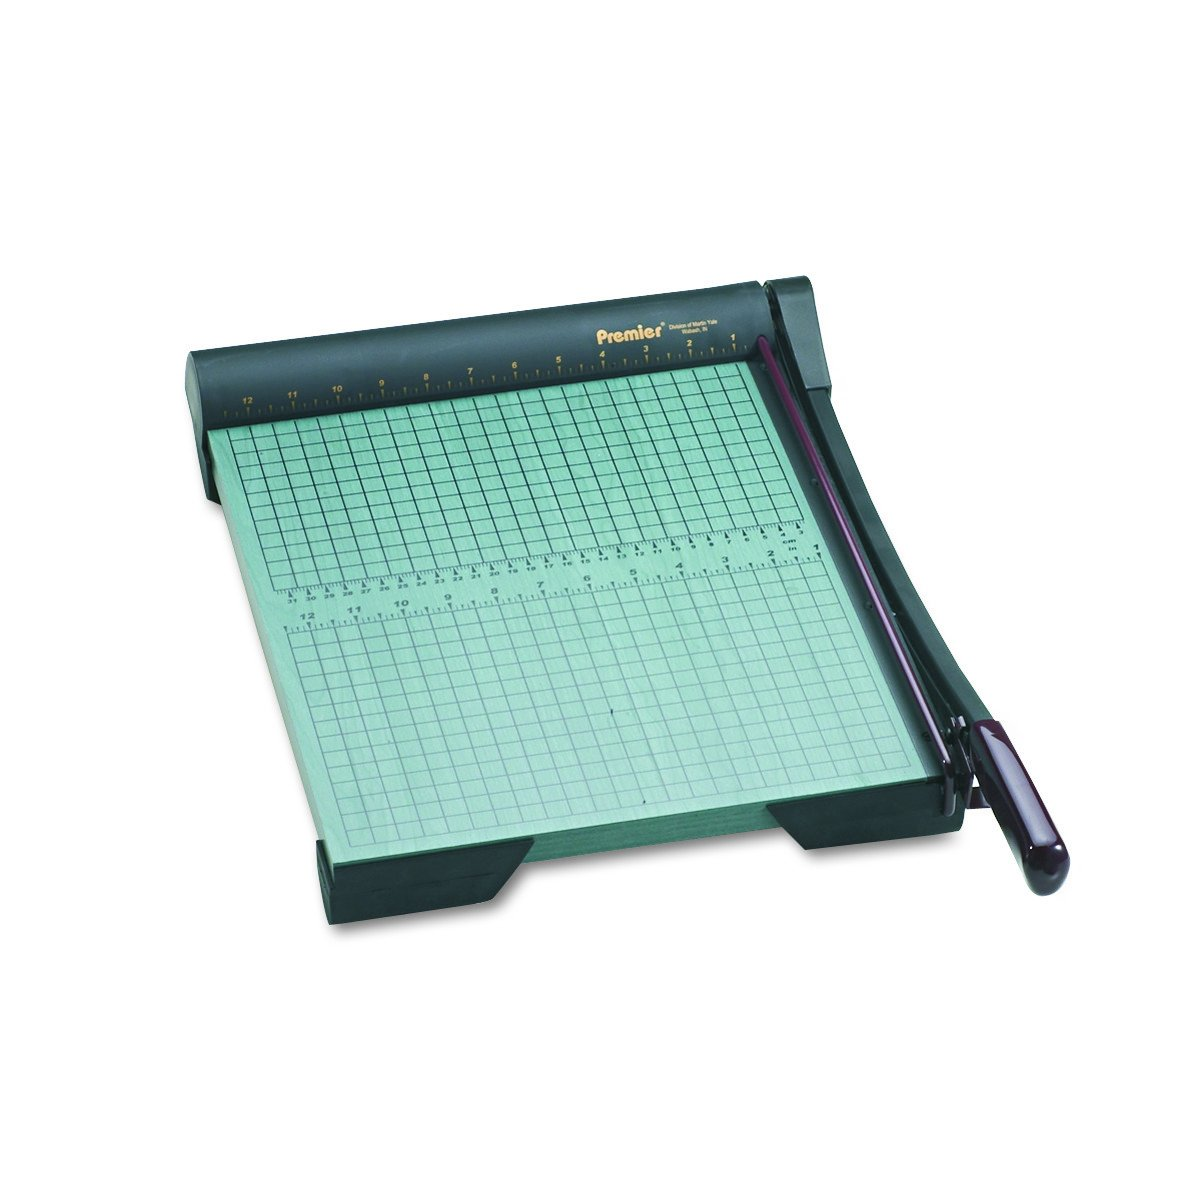 Martin Yale T12 Premier SharpCut Trimmer Cuts up to 15 Sheets at Once 12 Cutting Length Base Size 13.25 x 23 x 2.38